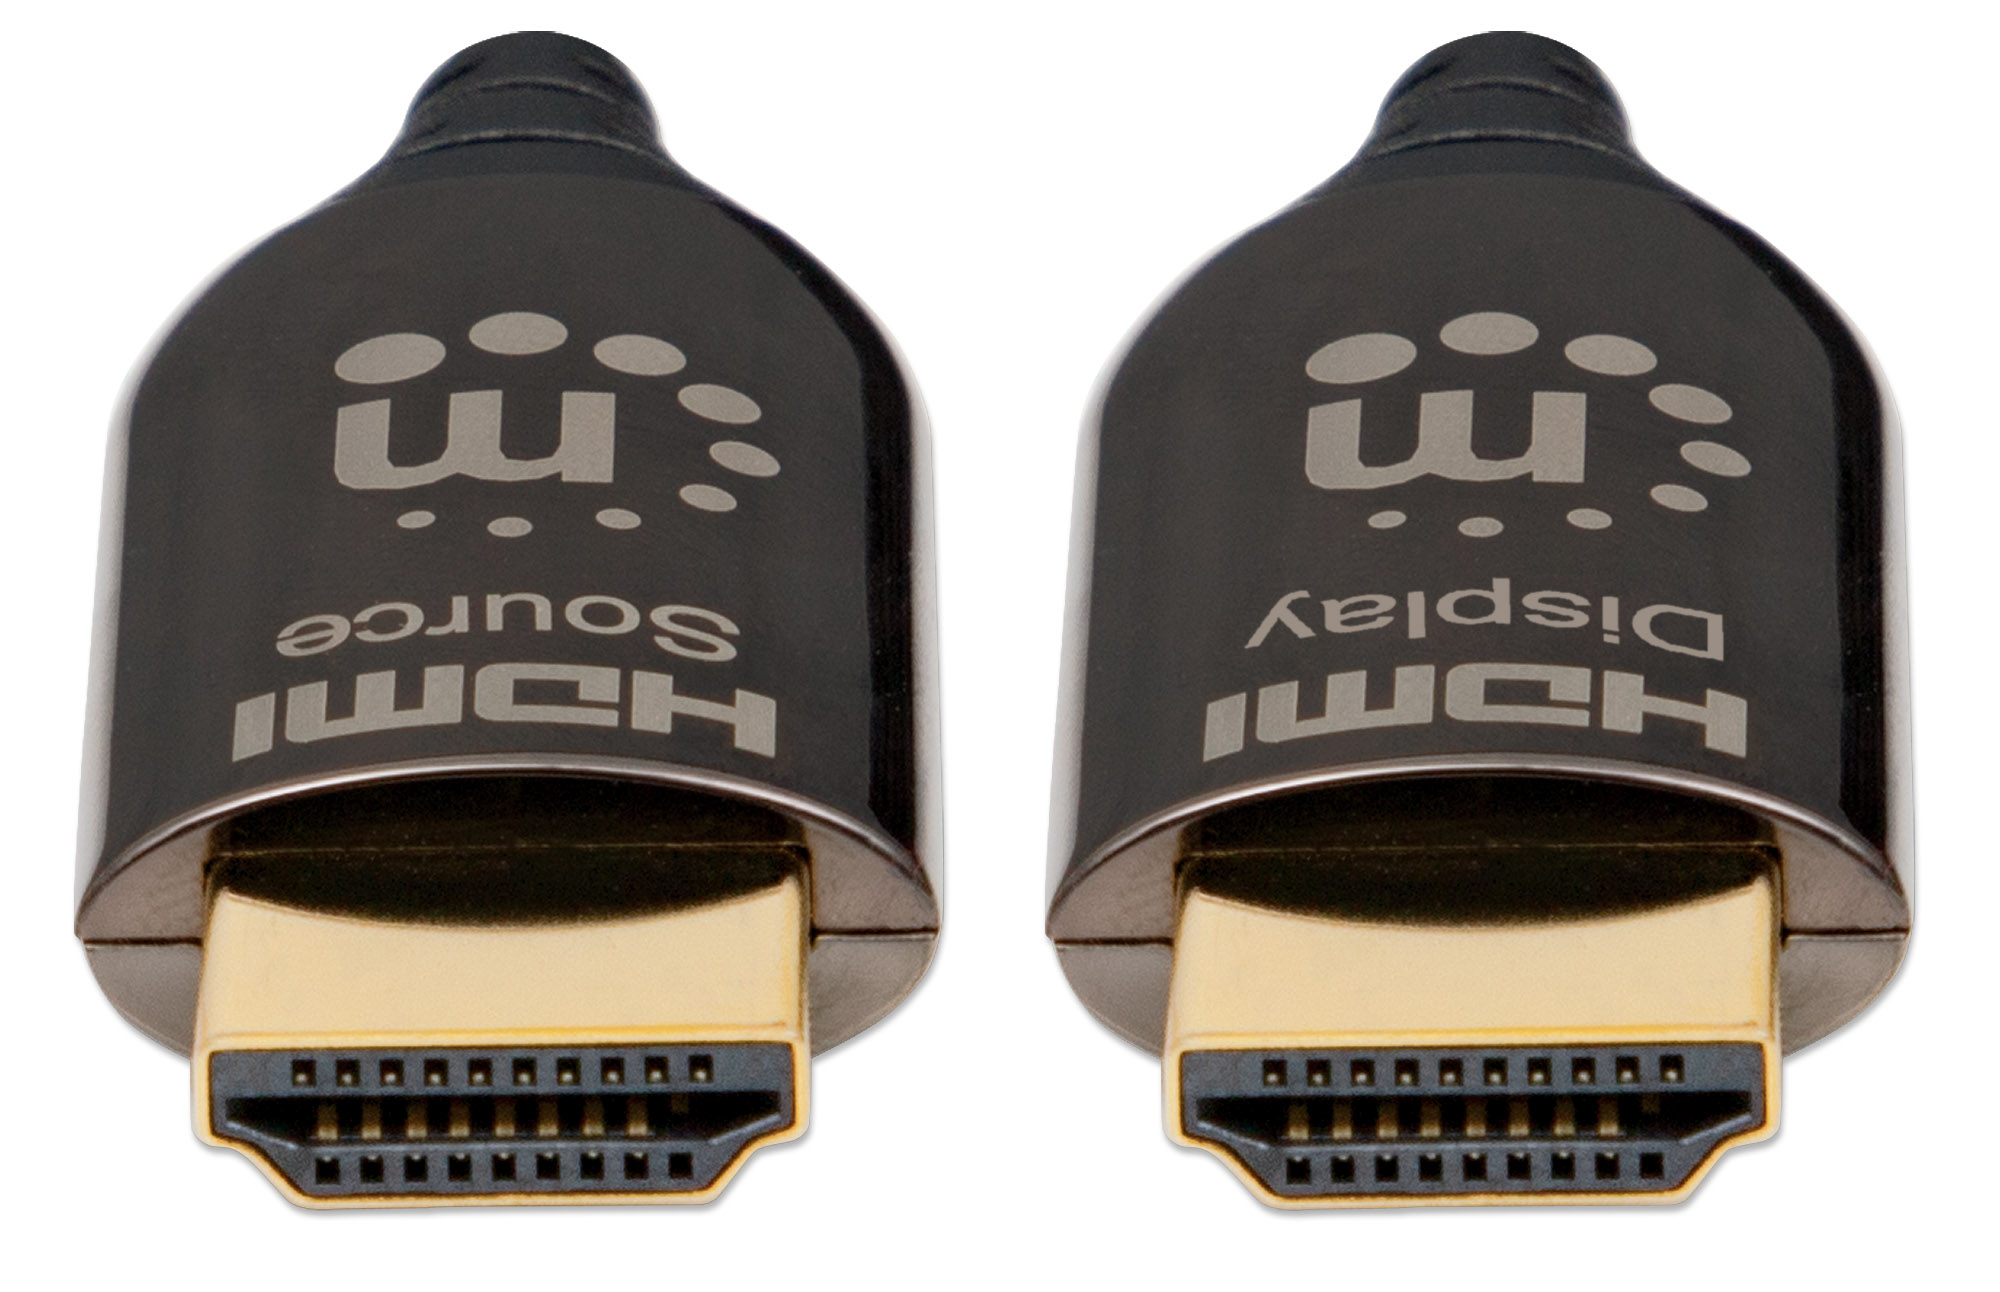 Plenum-Rated HDMI Active Optical Cable